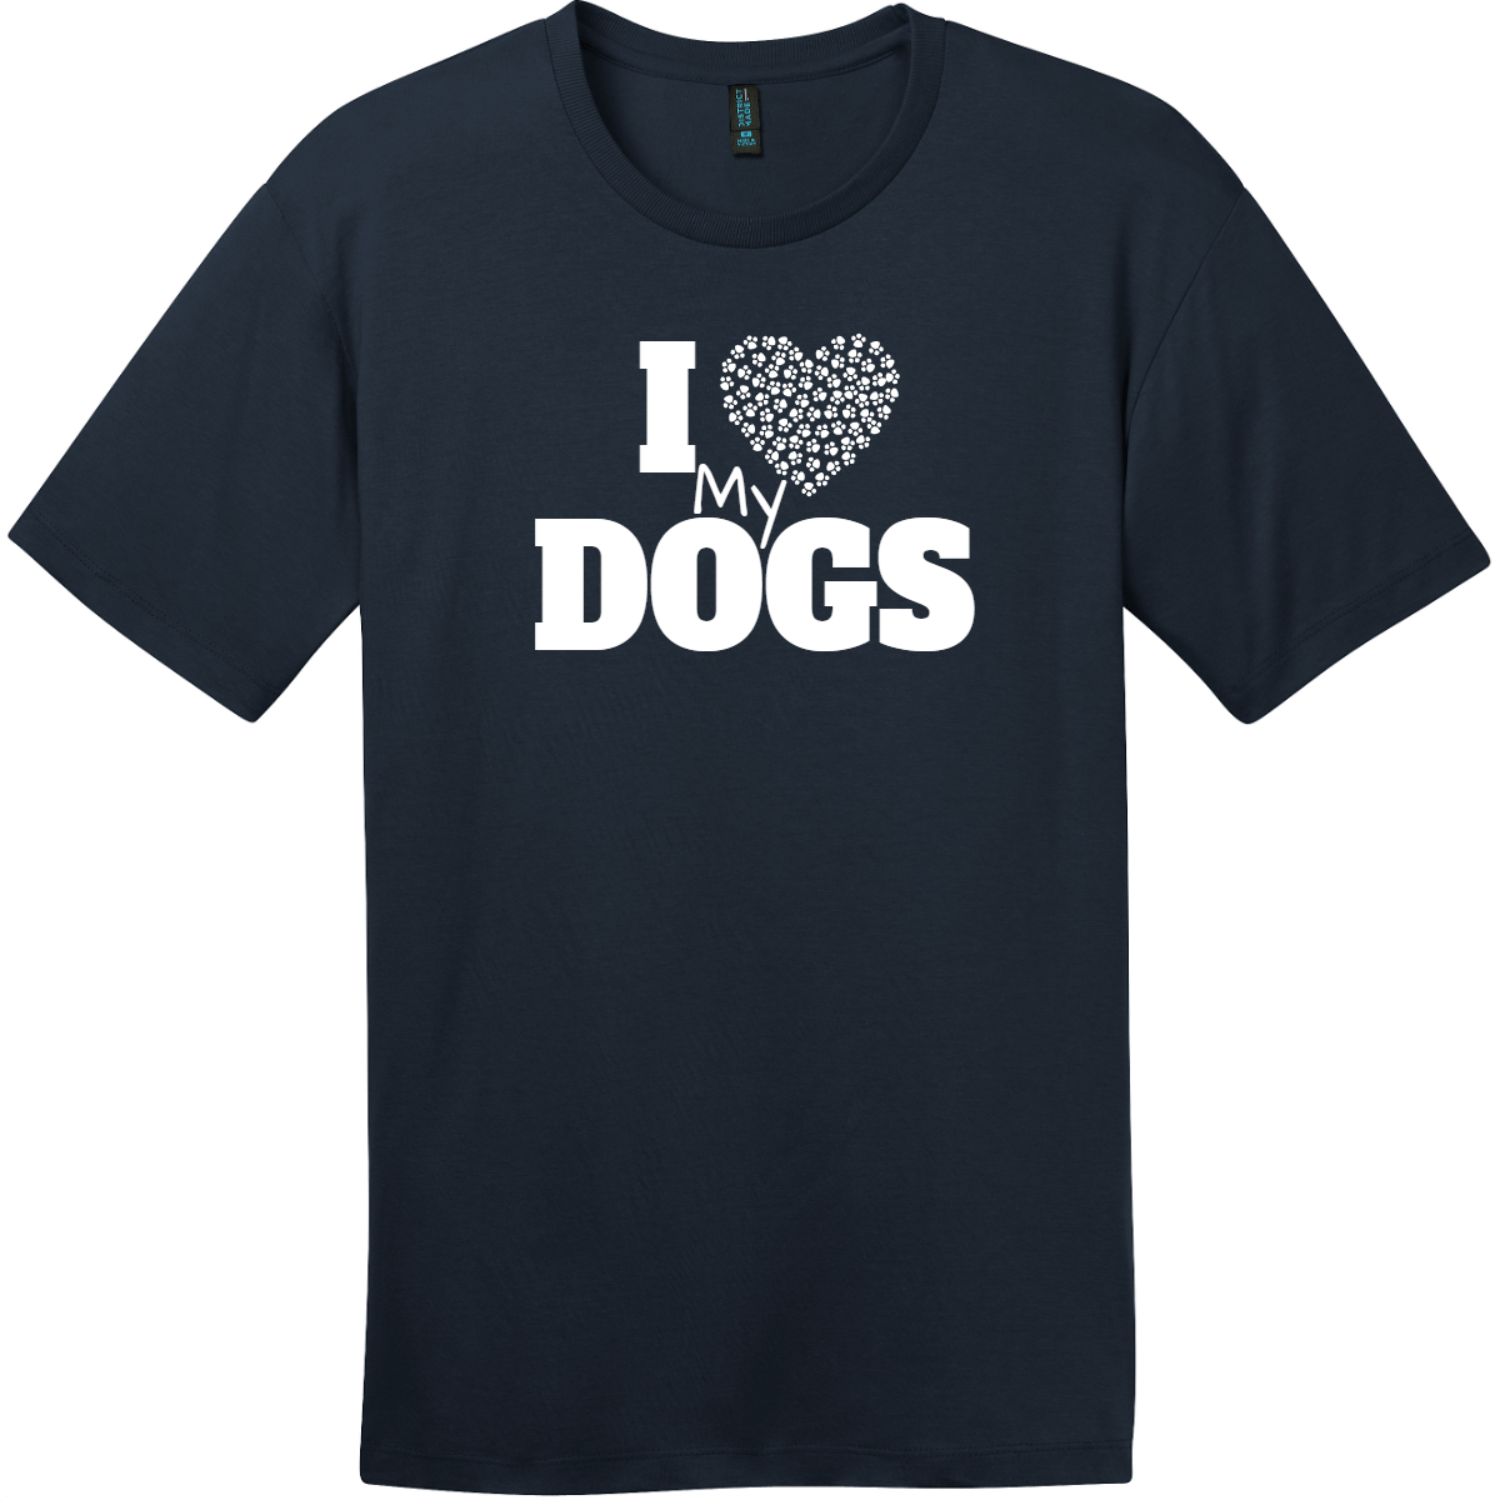 I Love My Dogs Heart T-Shirt New Navy District Perfect Weight Tee DT104